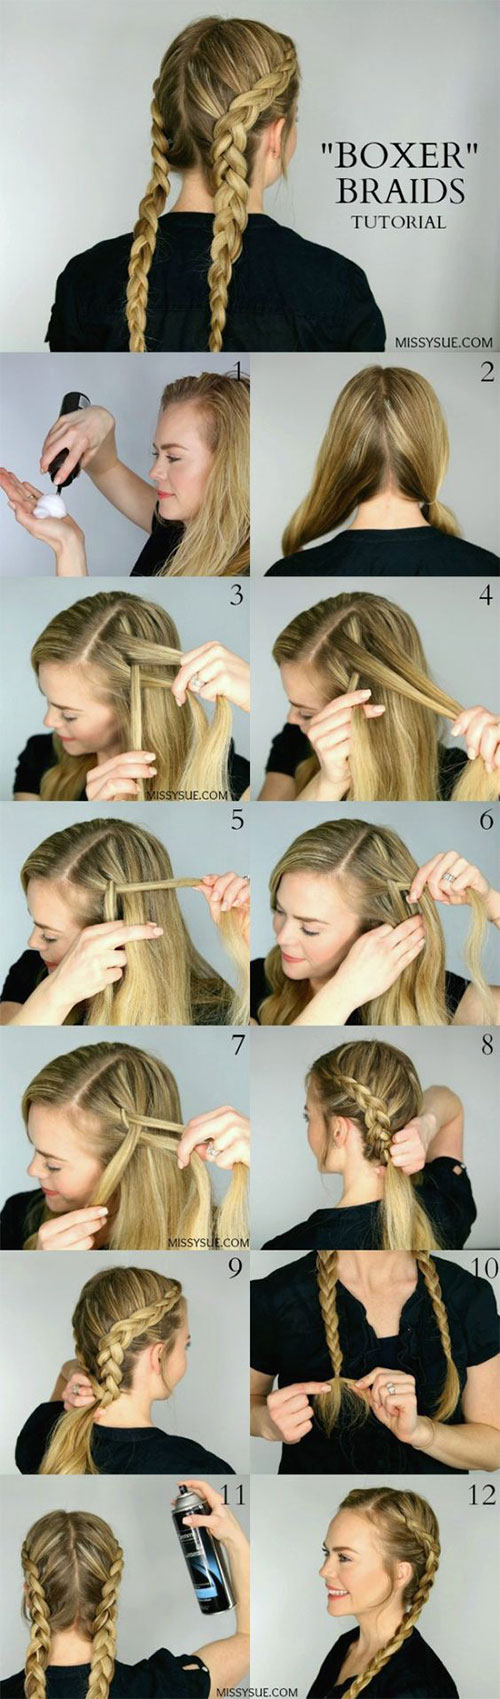 Step-By-Step-Boxer-Braid-Tutorial-For-Beginners-Learners-2016-1